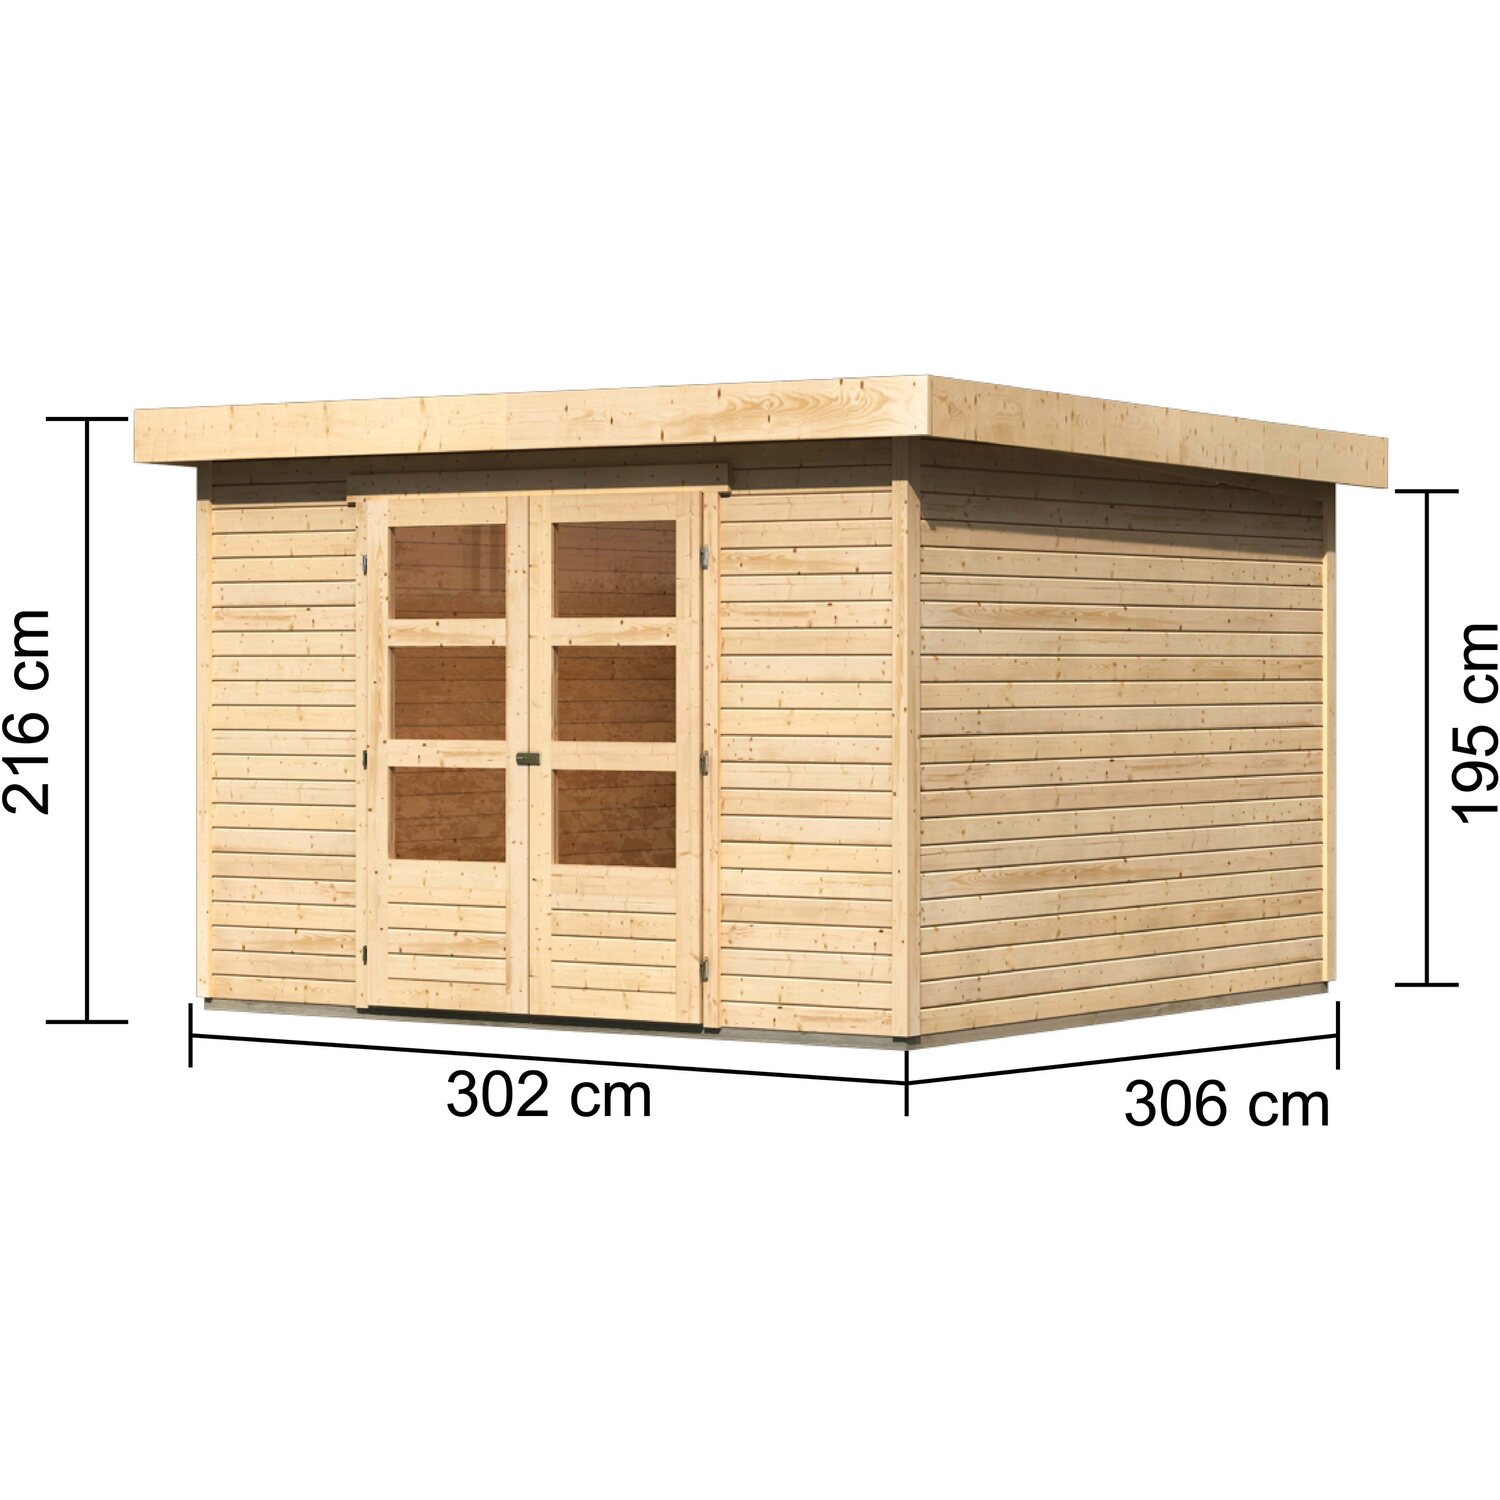 karibu holz gartenhaus boras 6 natur 302 cm x 306 cm. Black Bedroom Furniture Sets. Home Design Ideas